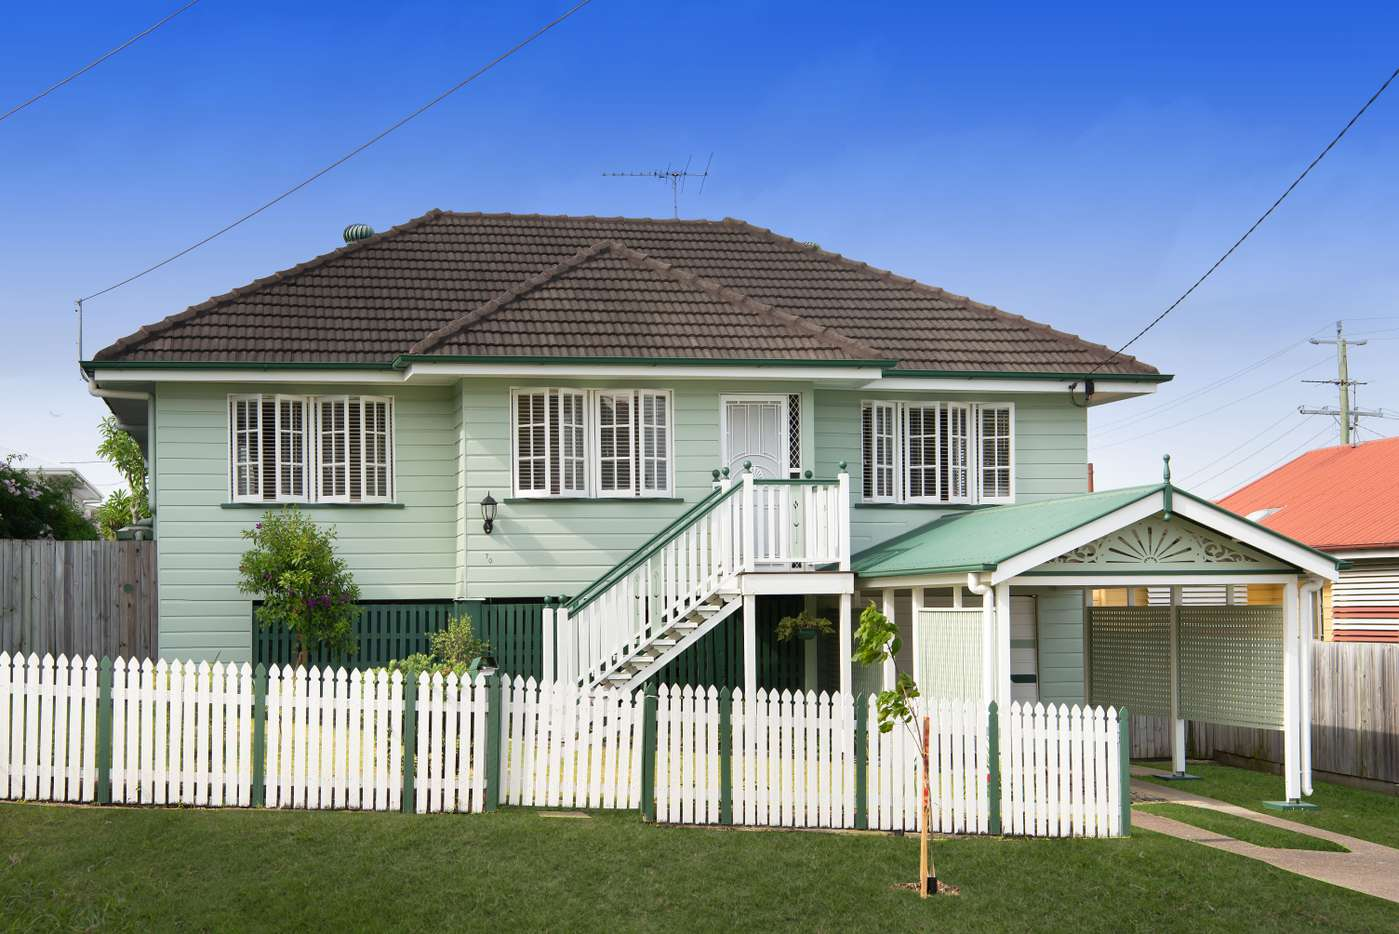 Main view of Homely house listing, 70 Brisbane Avenue, Camp Hill, QLD 4152